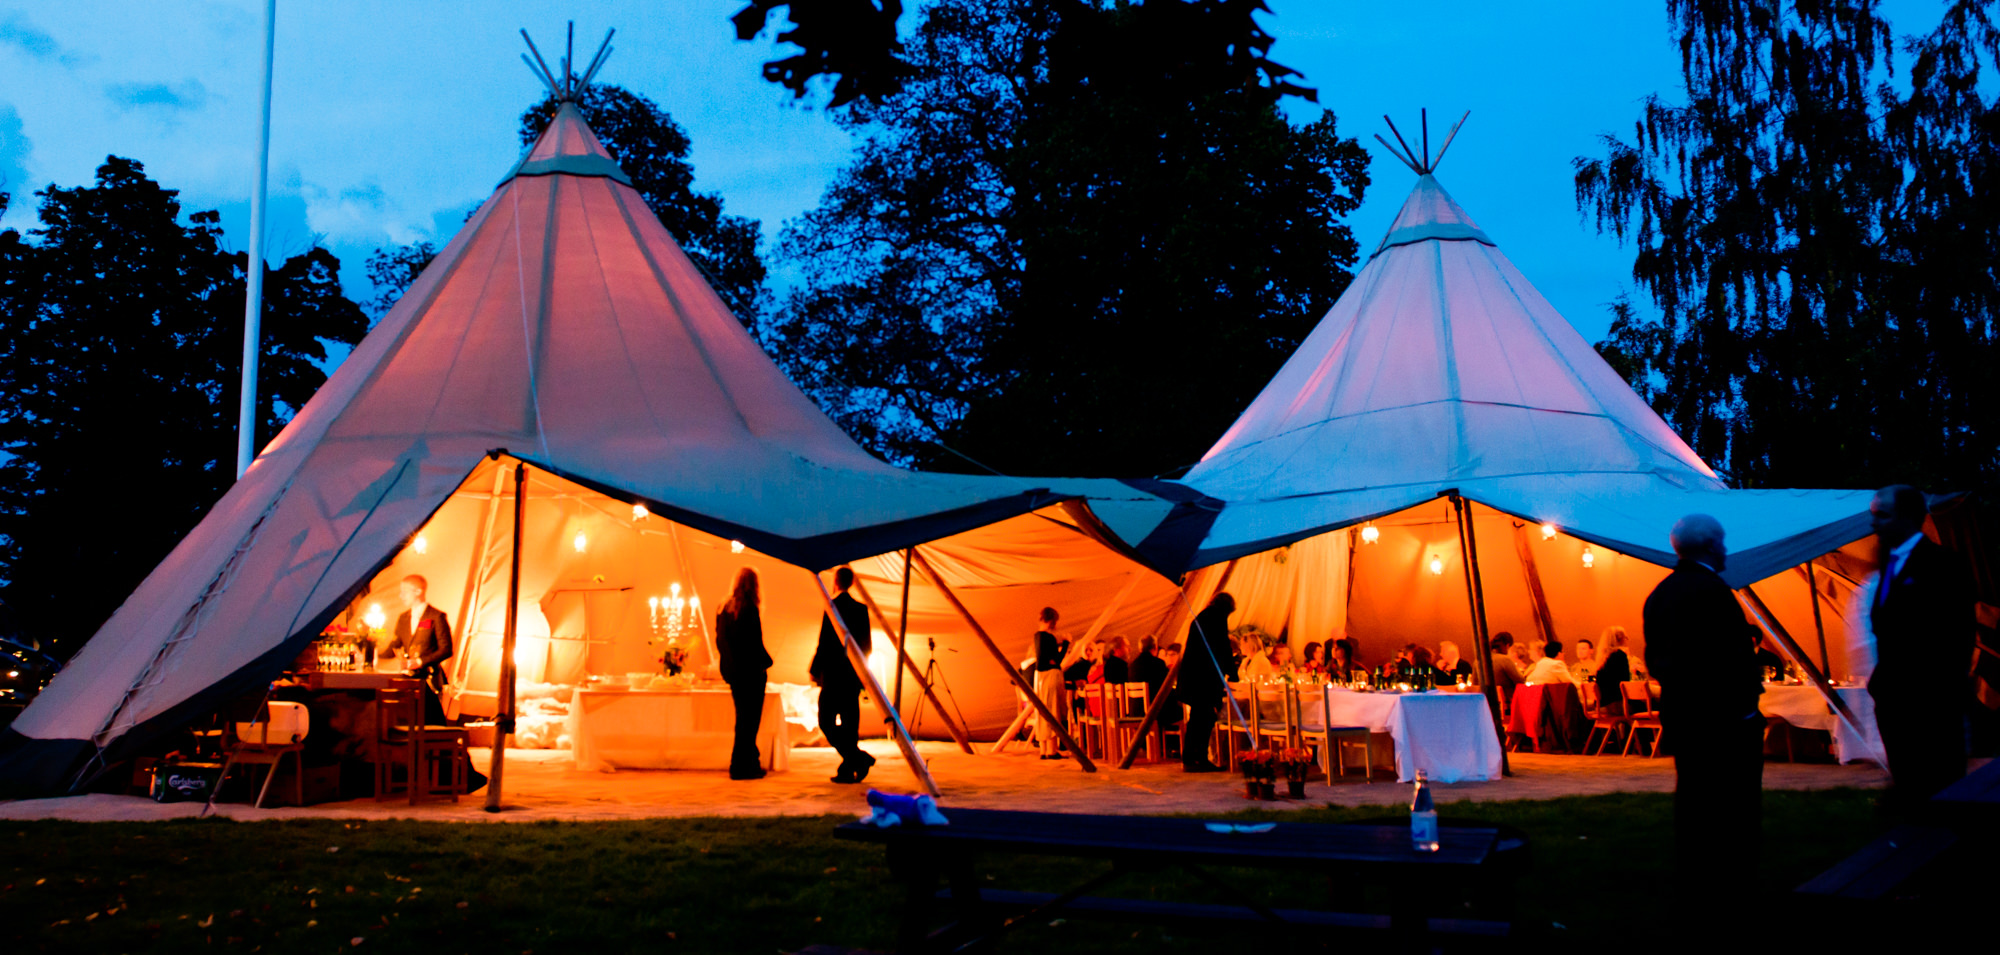 tipi-tent-hire-in-lincolnshire-13.jpg